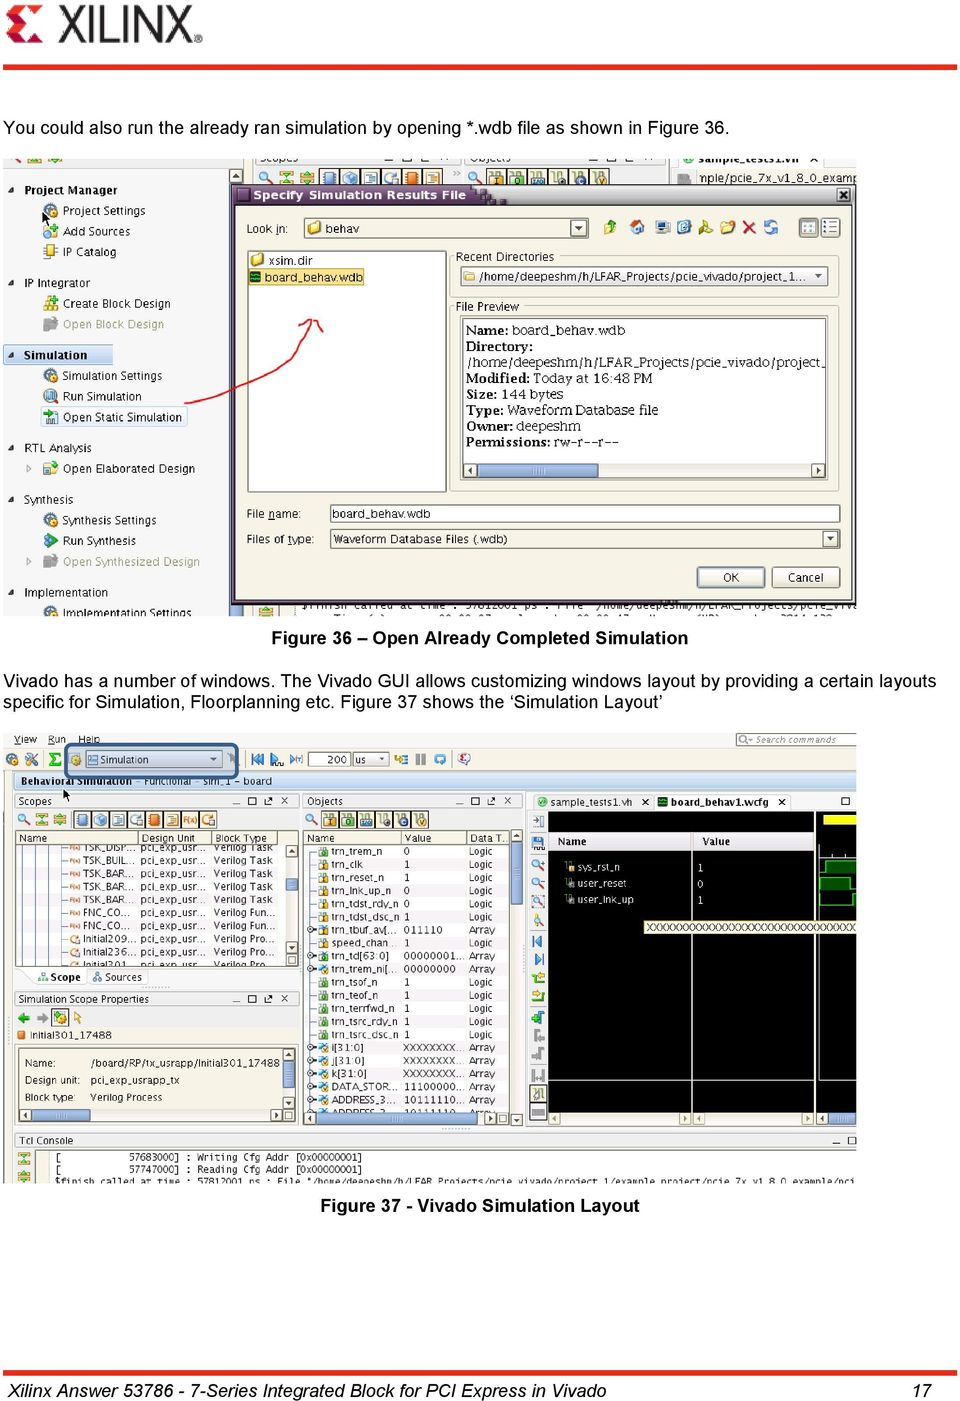 The Vivado GUI allows customizing windows layout by providing a certain layouts specific for Simulation,